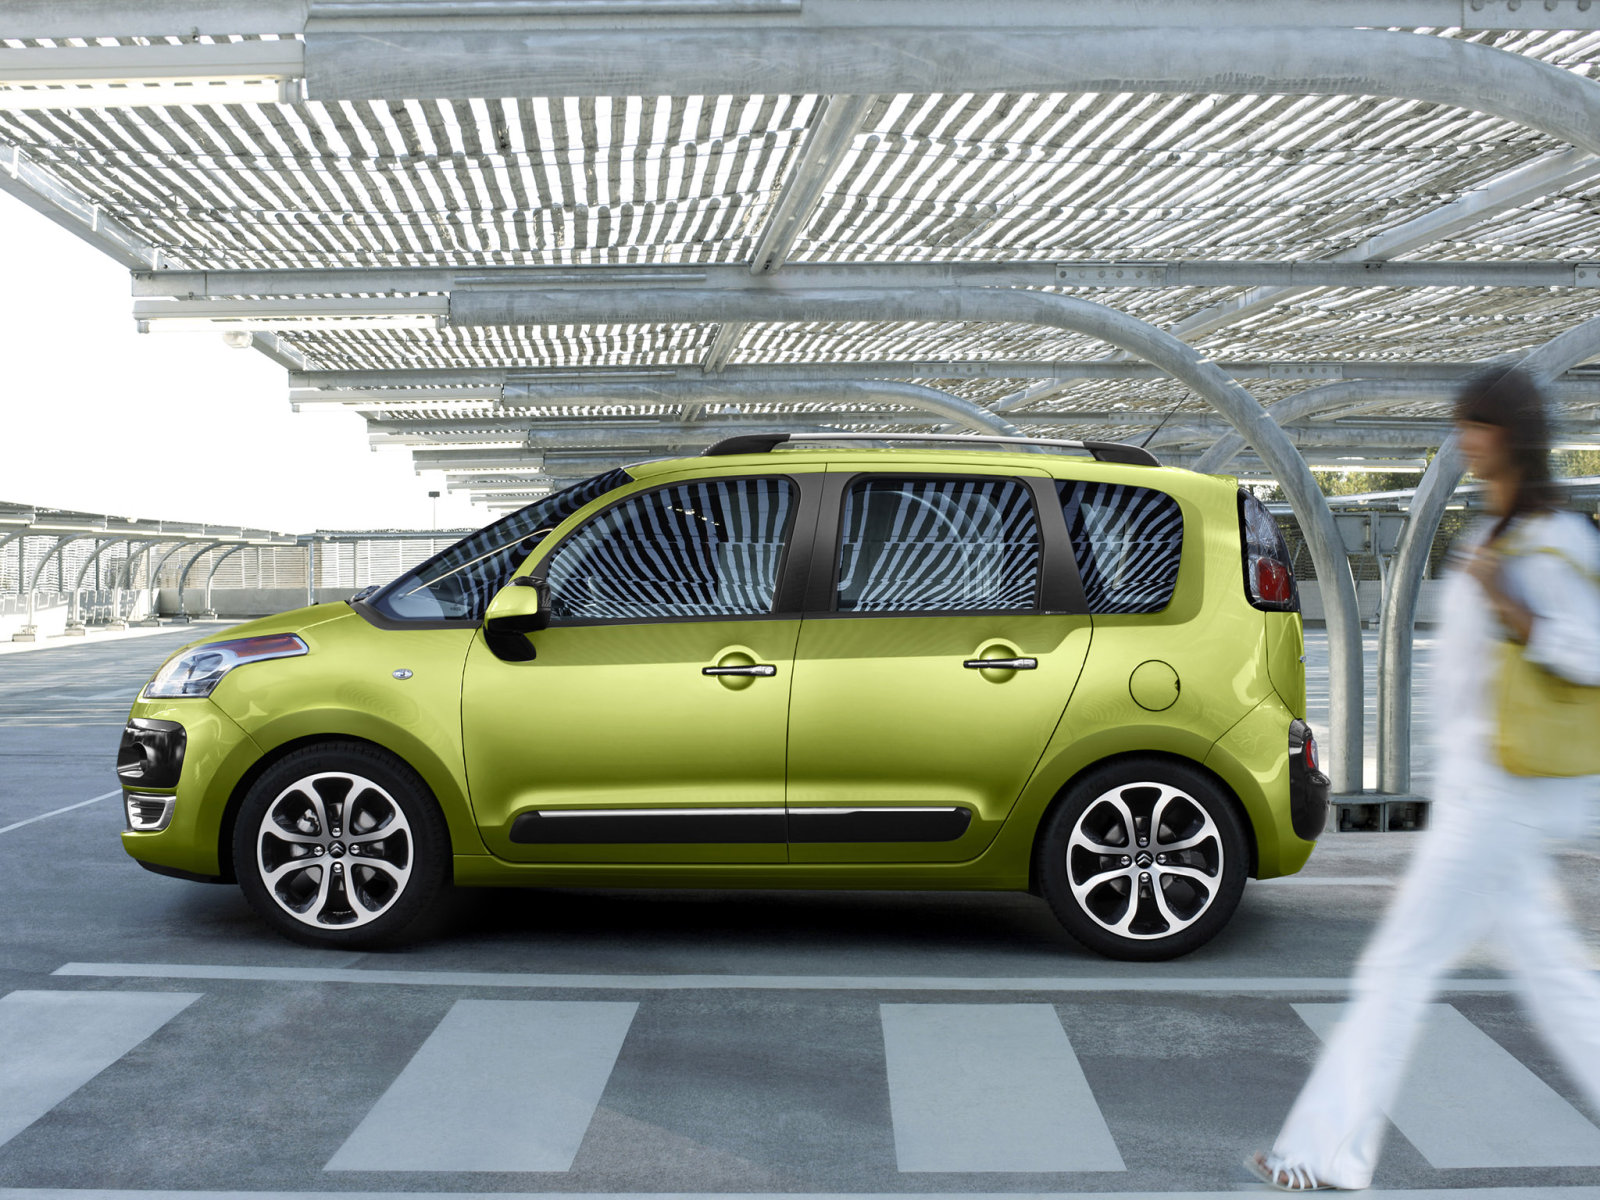 2019 Citroen C3 Picasso photo - 2